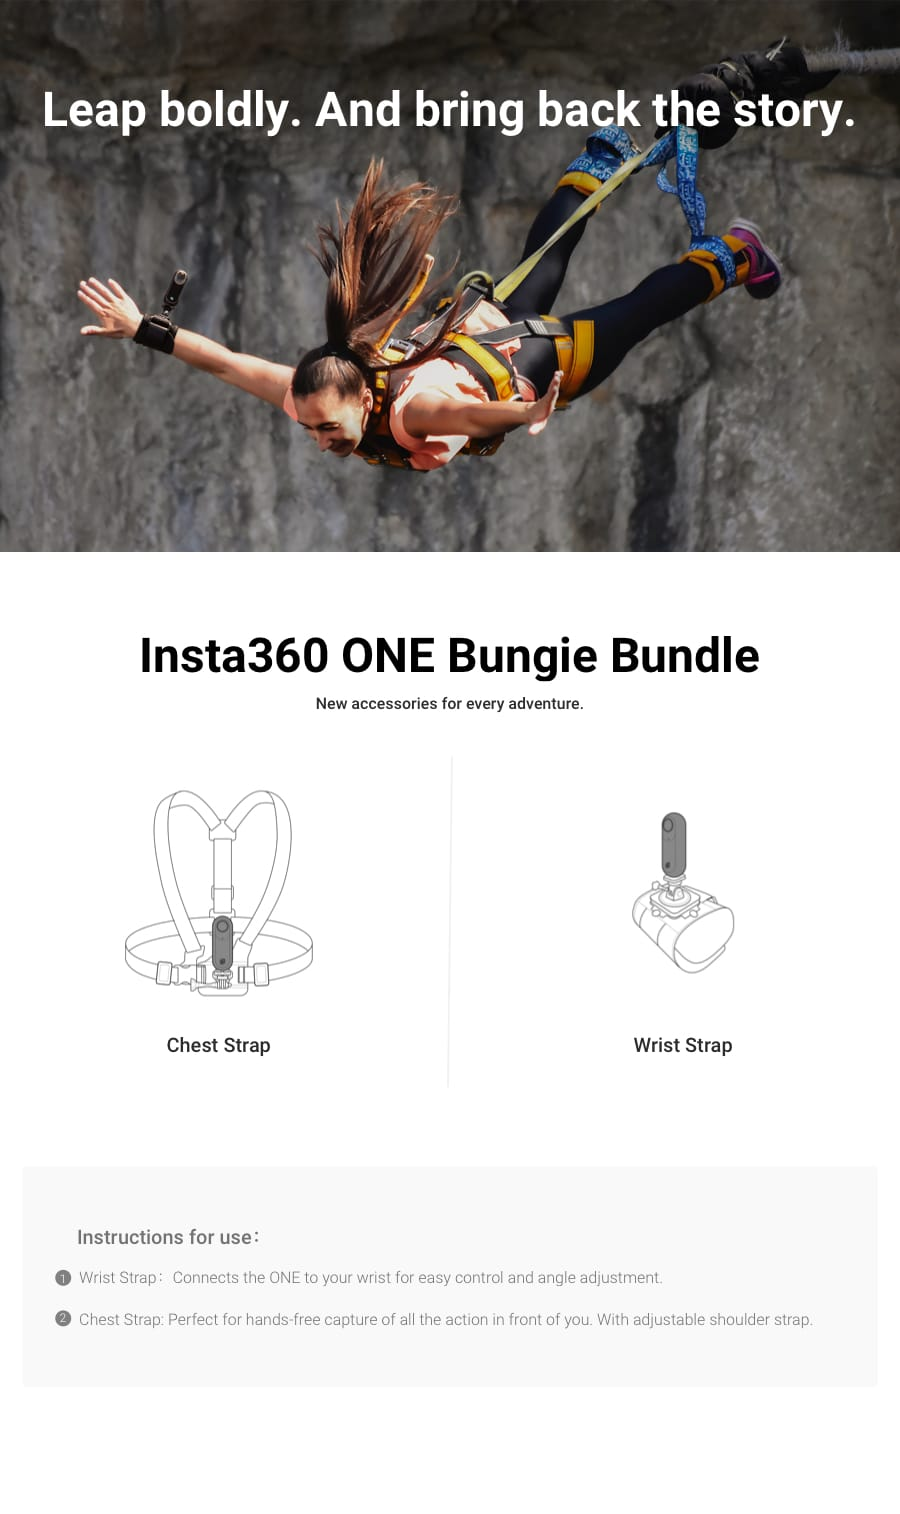 Bungie Bundle ( Insta360 ONE X and ONE Accessories )